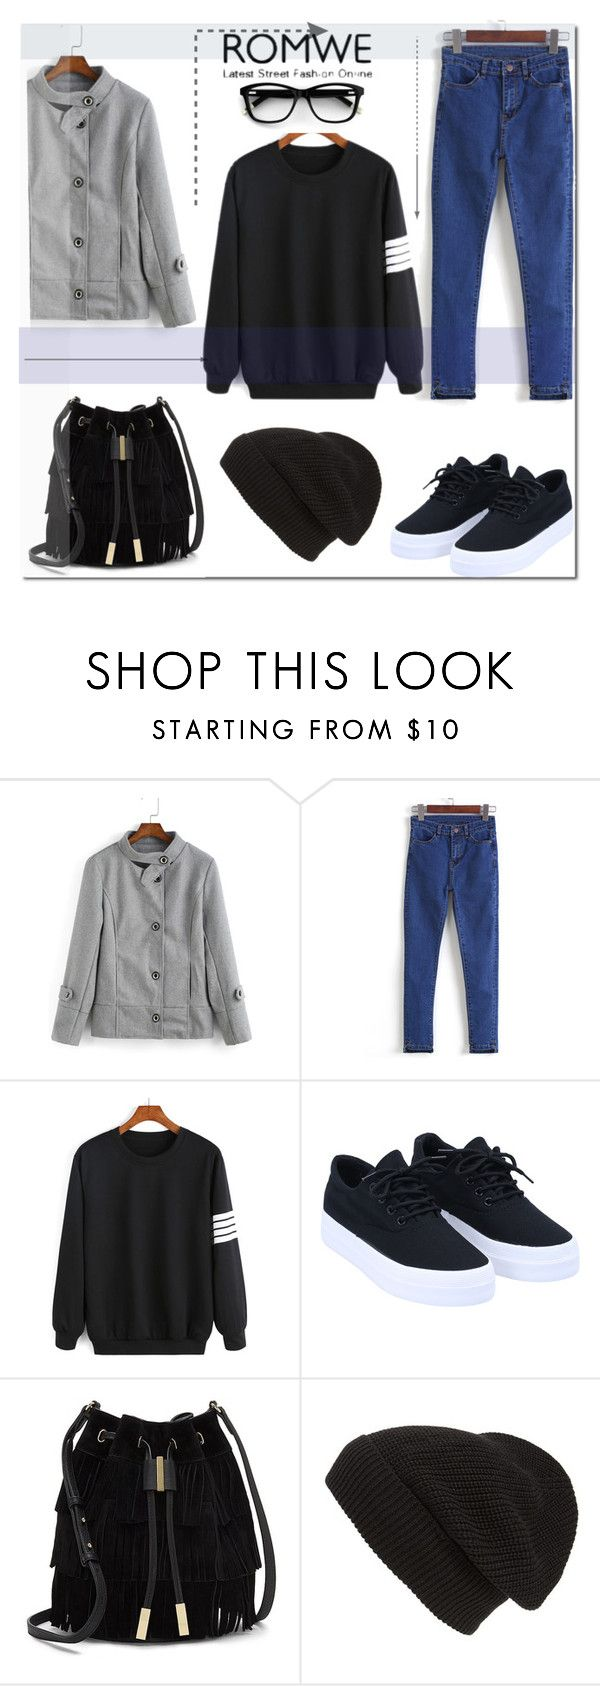 """""""romwe.com"""" by ilona-828 ❤ liked on Polyvore featuring Vince Camuto, Phase 3, romwe and polyvoreeditorial"""